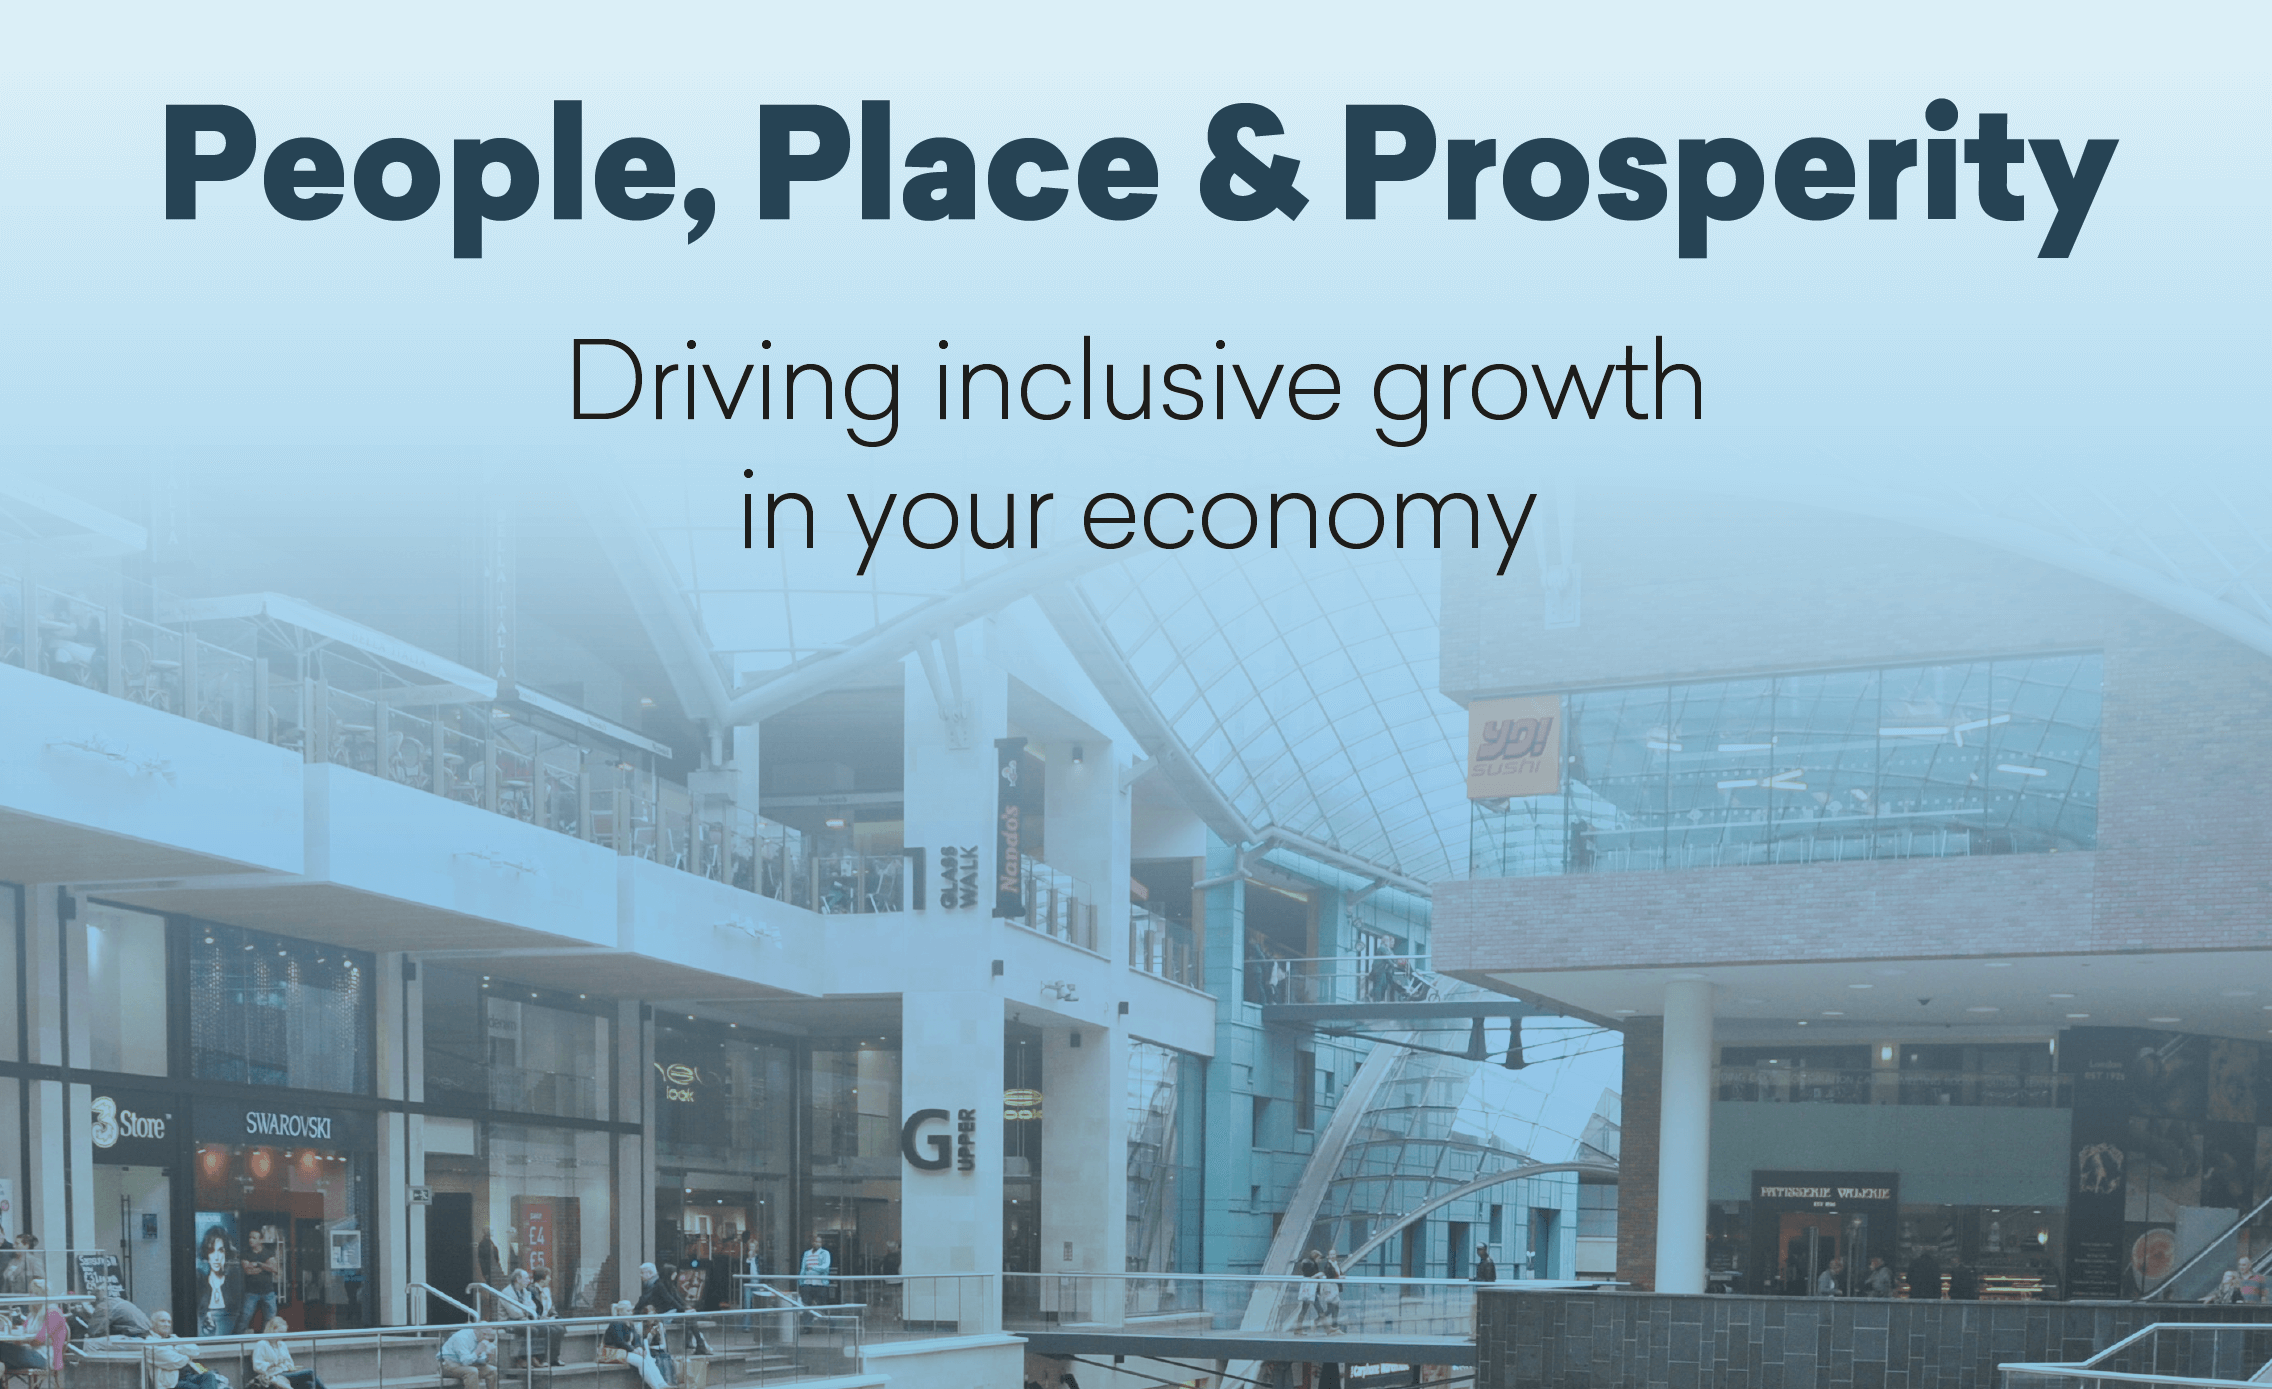 People, Place & Prosperity — How Emsi Can Help LEPs in Their Skills and  Growth Strategies (Part 4) - Emsi